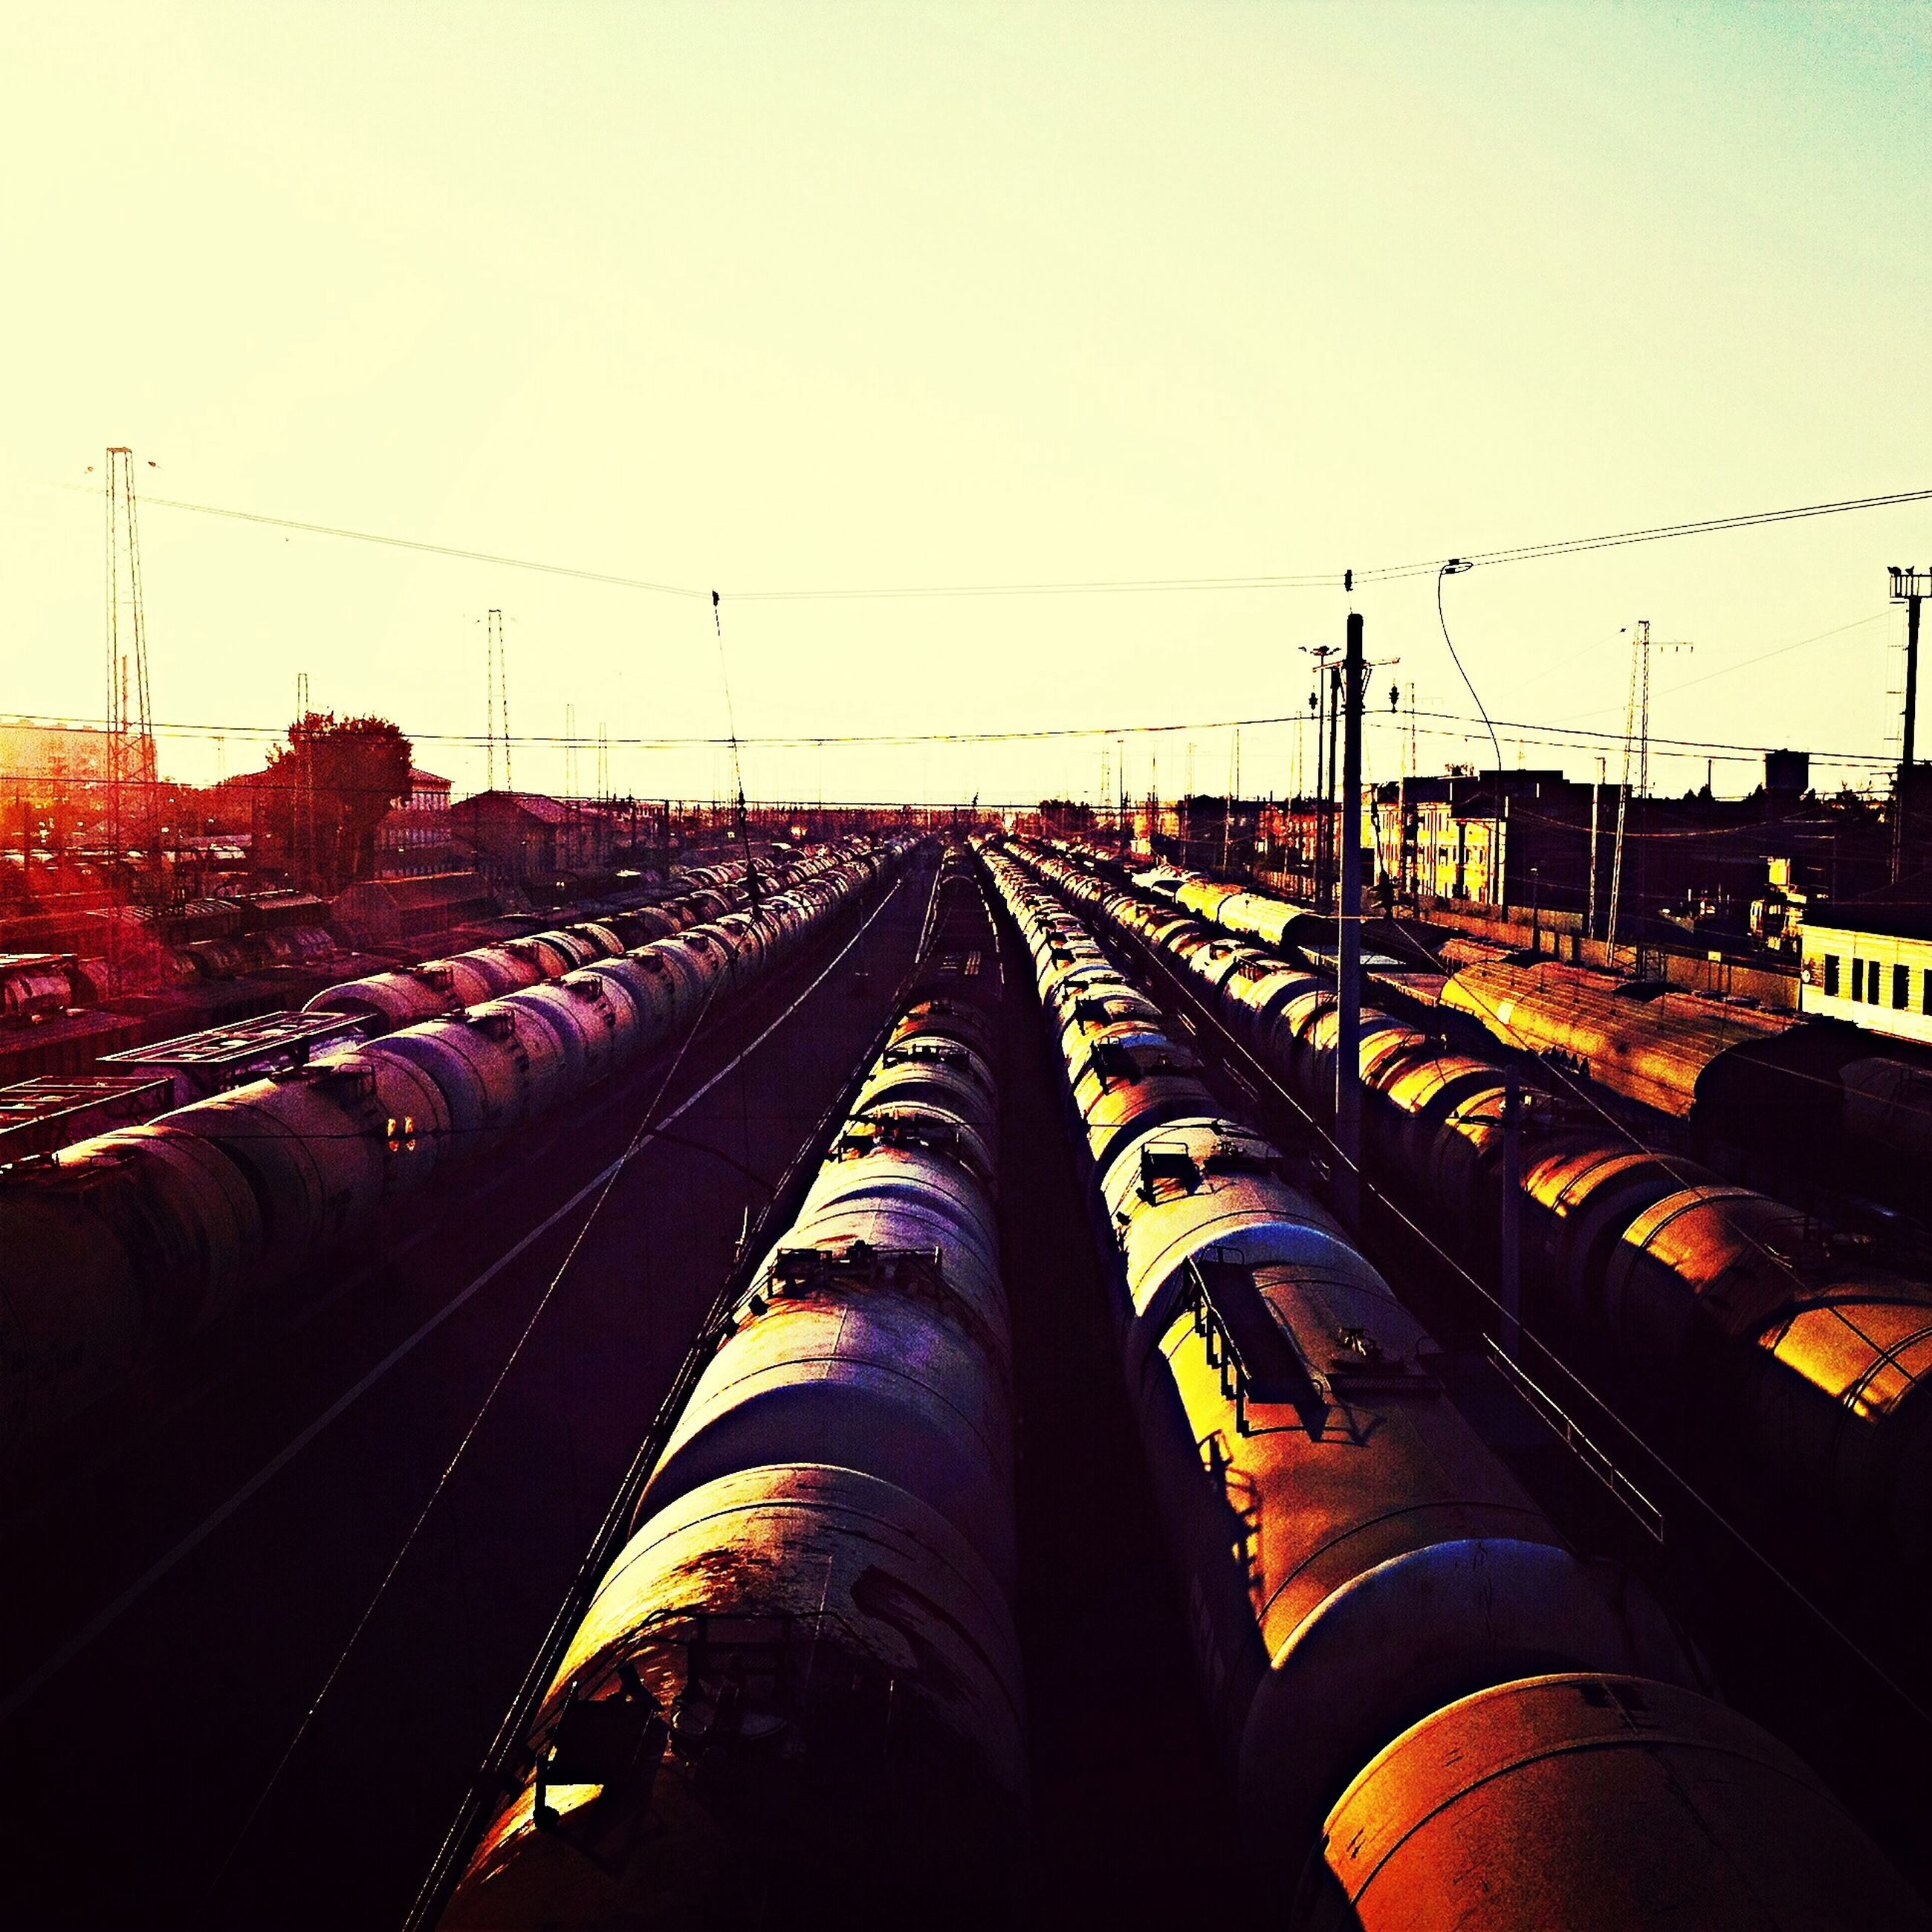 railroad track, transportation, clear sky, diminishing perspective, rail transportation, sky, built structure, high angle view, architecture, building exterior, the way forward, vanishing point, outdoors, illuminated, power line, dusk, connection, no people, copy space, in a row